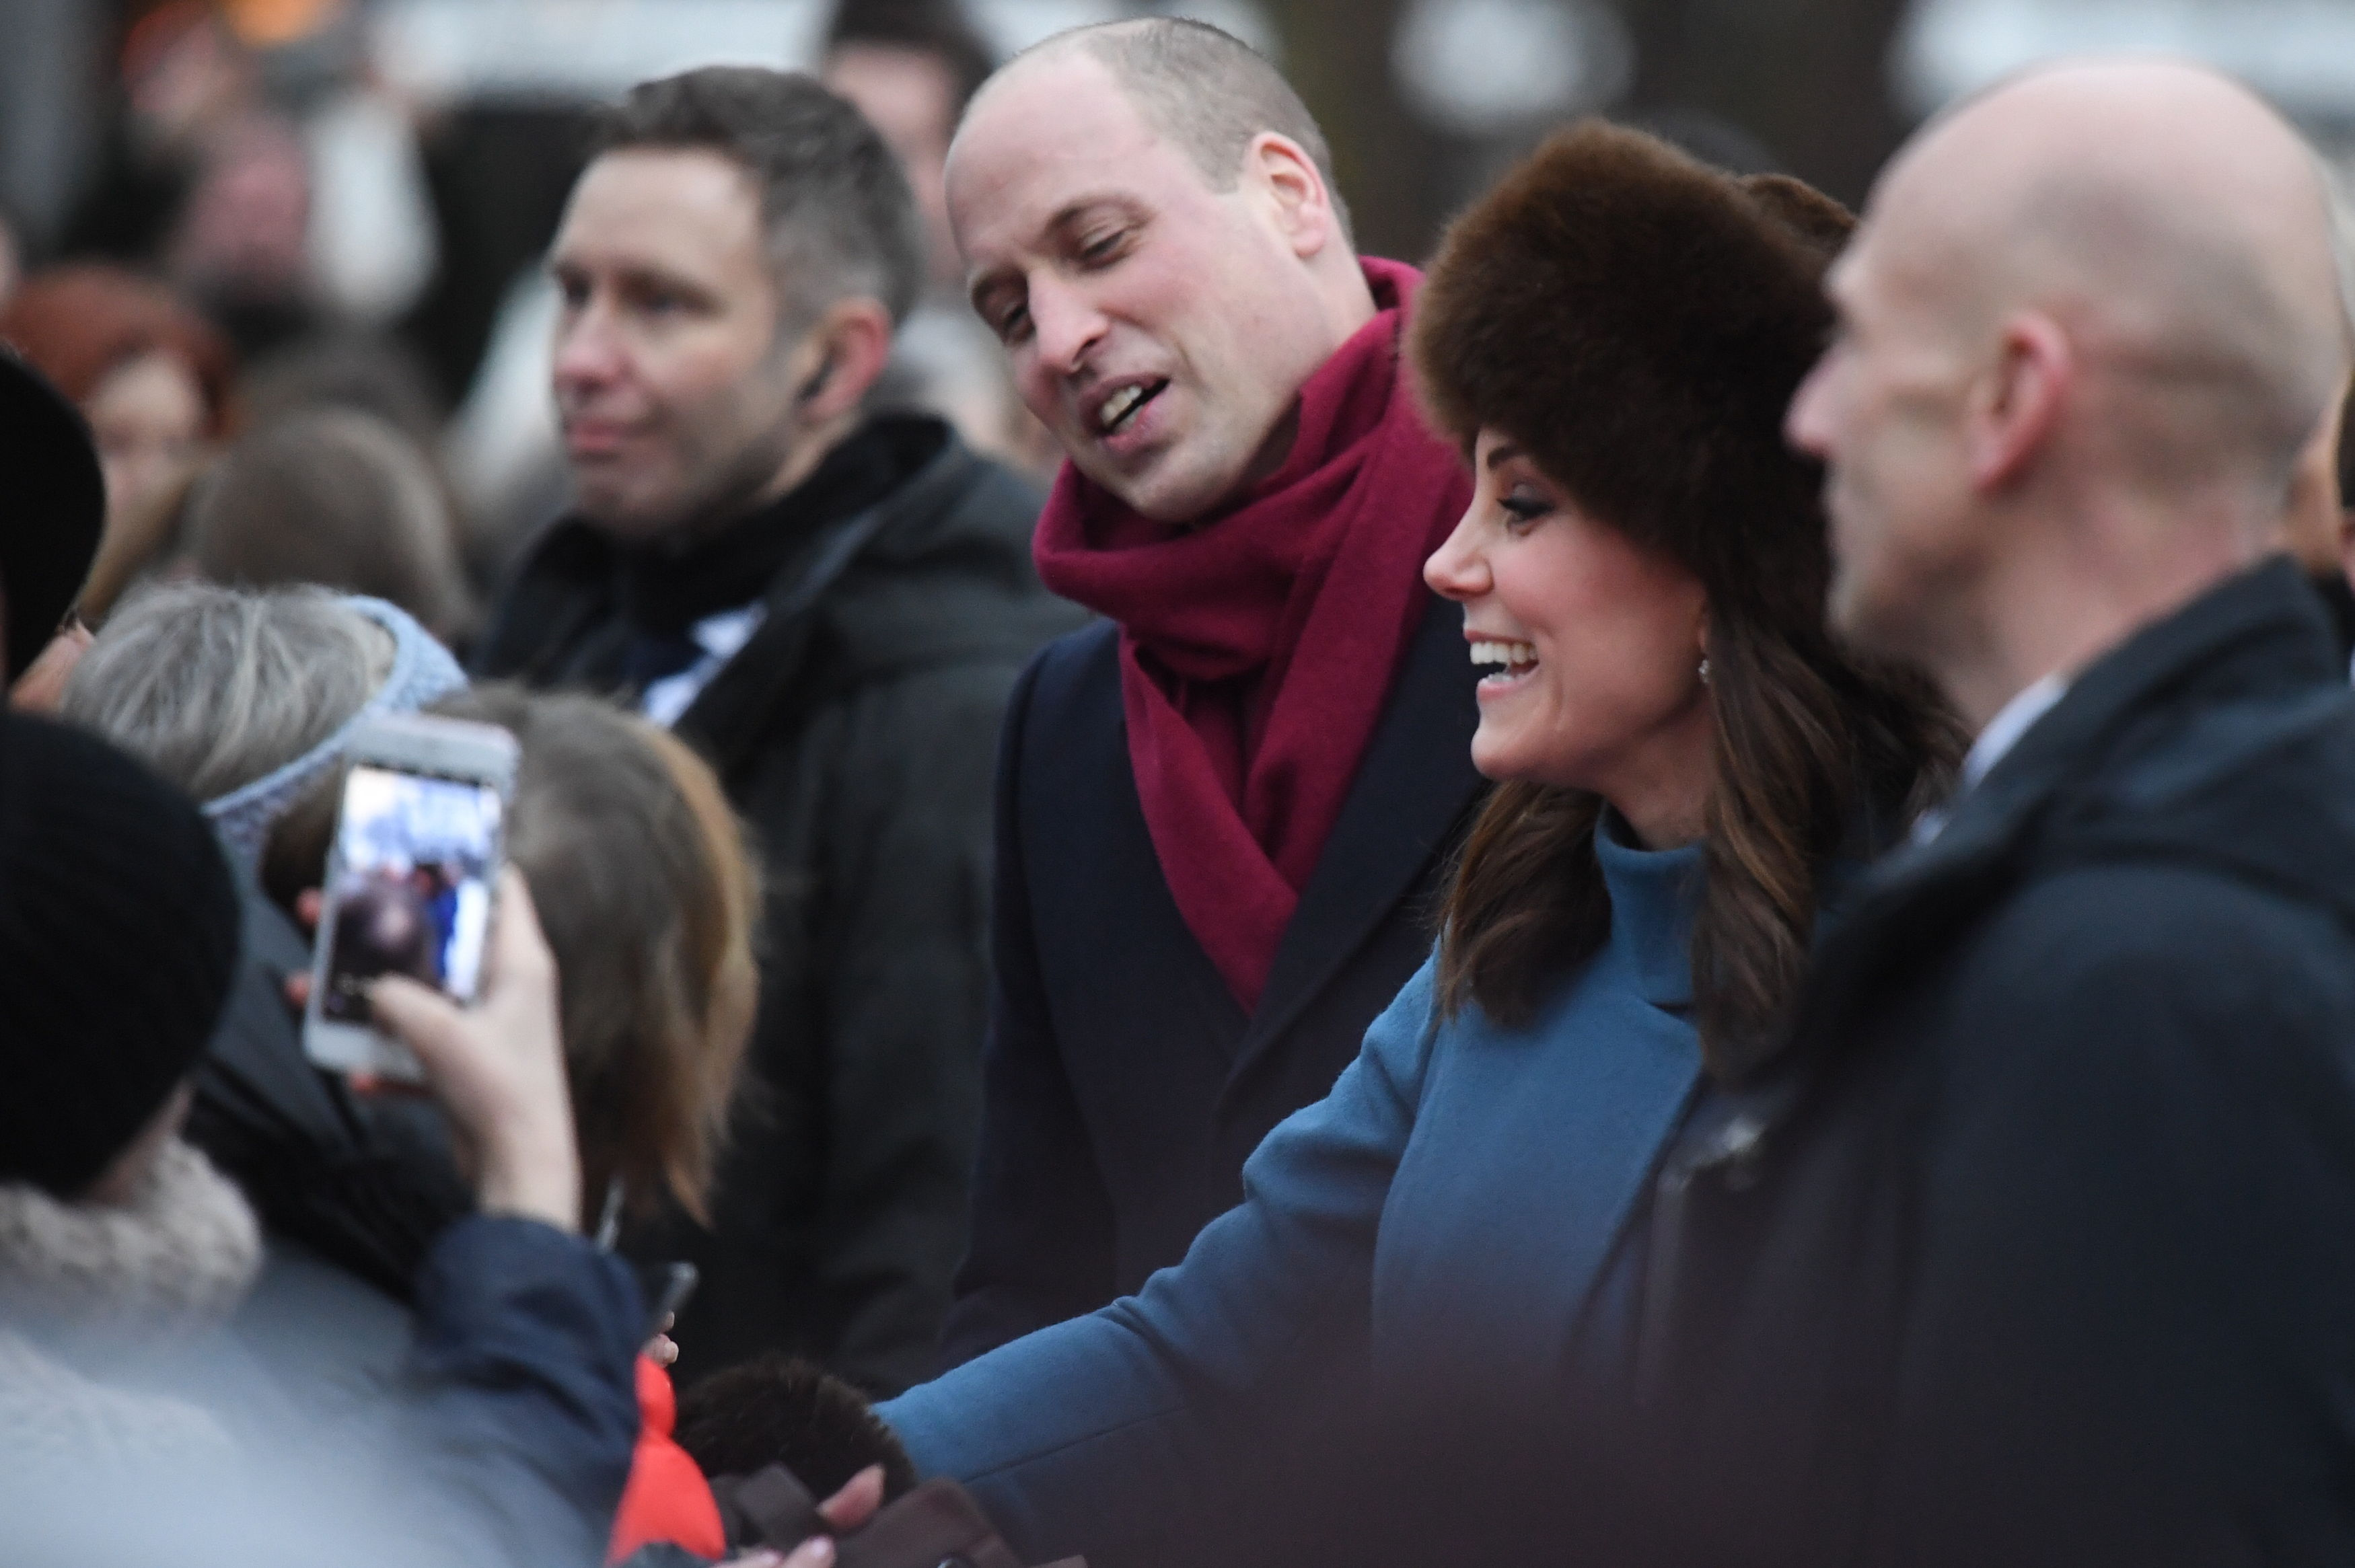 The Duke and Duchess of Cambridge meet the crowd as they arrive at the Norwegian Royal Palace in Oslo, Norway (Victoria Jones/PA)